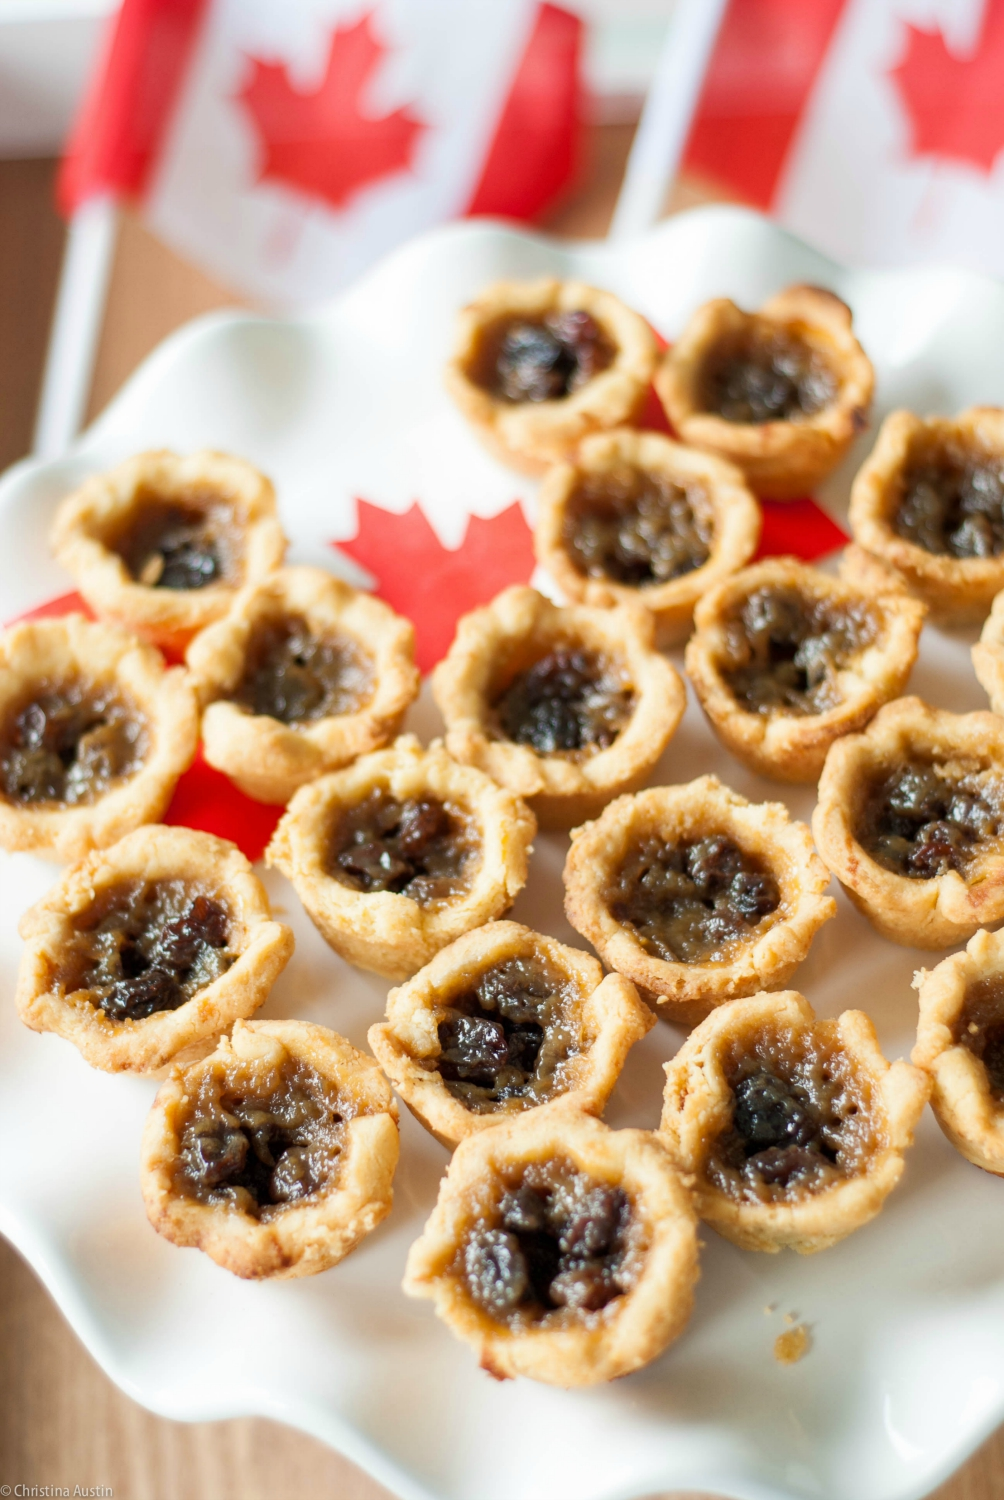 Gluten Free Maple Whisky Butter Tarts